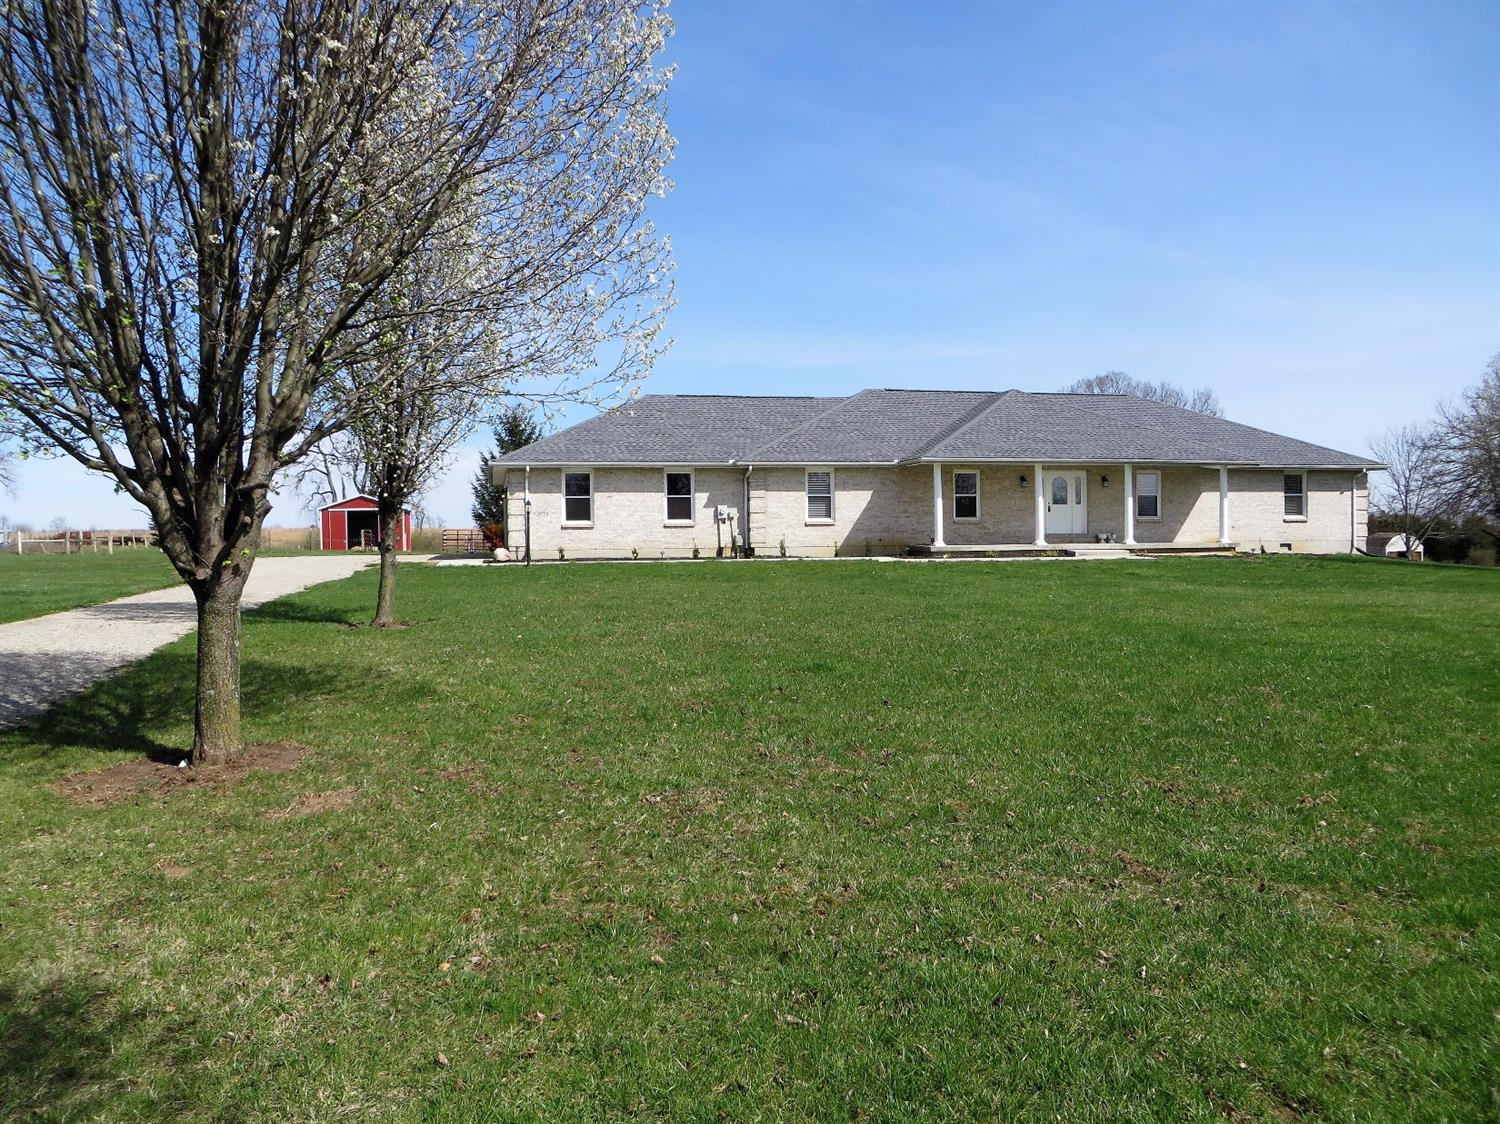 preble county singles Search all preble county, oh foreclosures for an amazing deal on your next home view the most up-to-date list of foreclosed homes in preble county on foreclosurefreesearchcom.